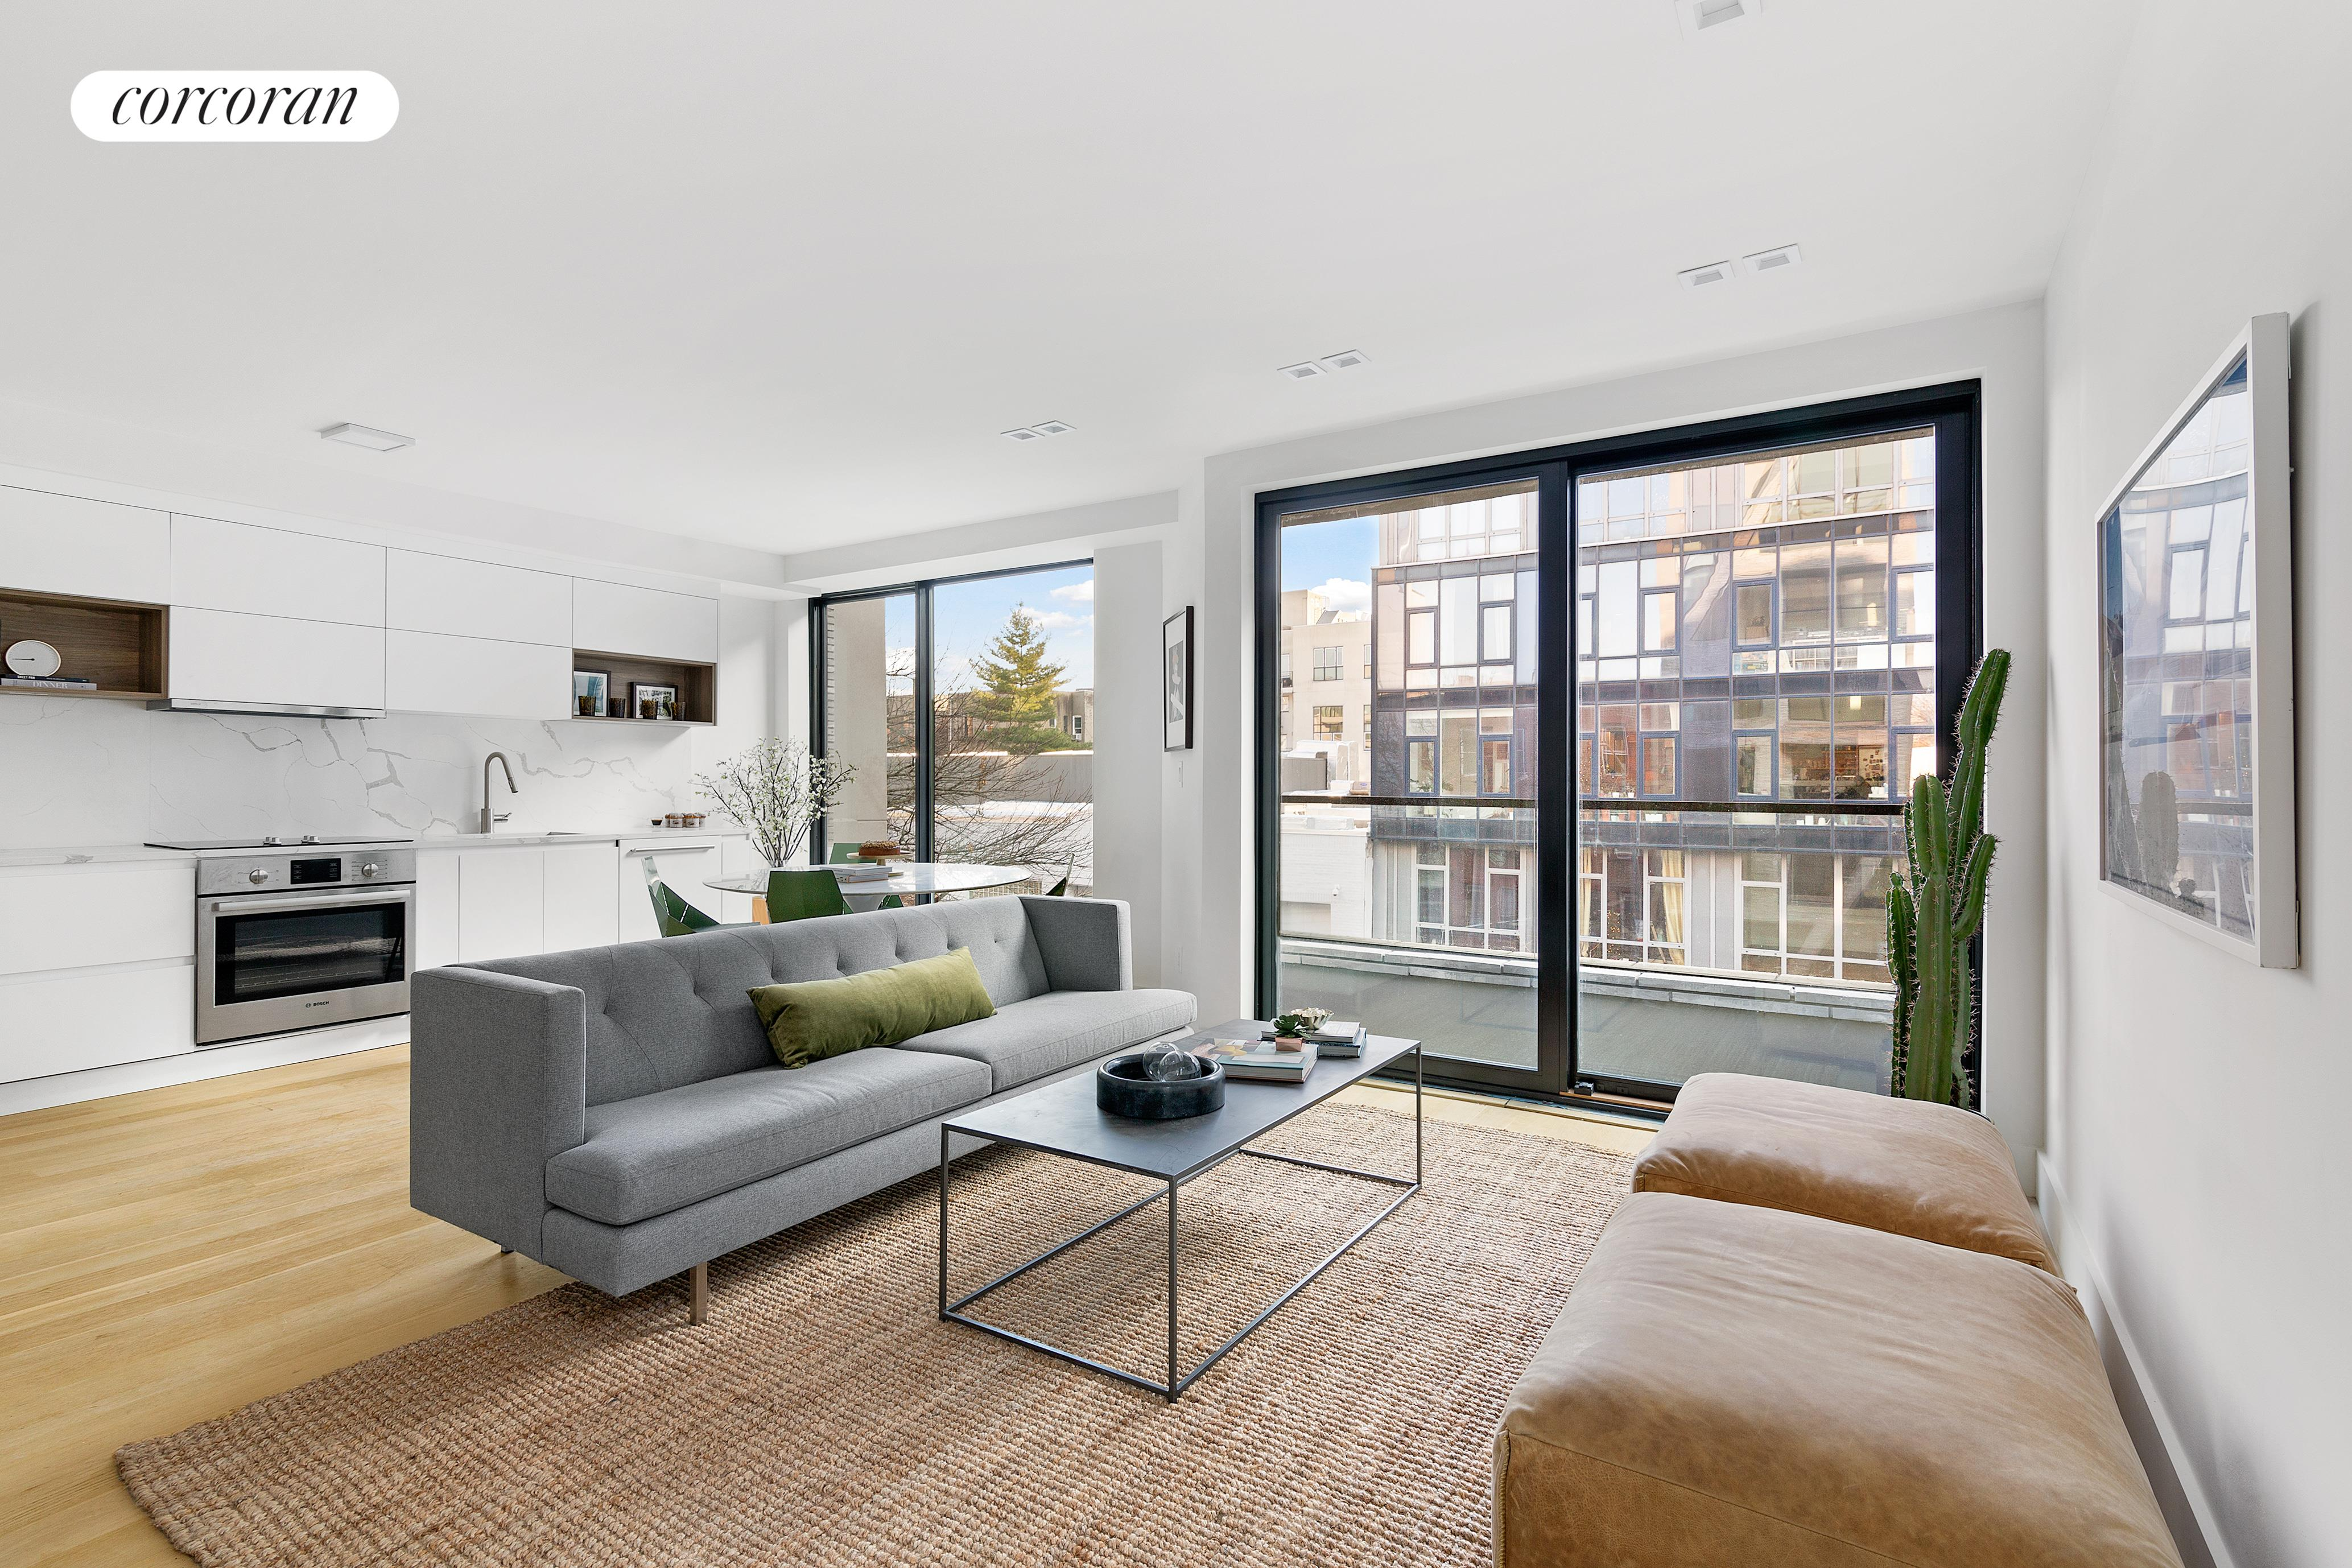 Apartment for sale at 141 Green Street, Apt 2